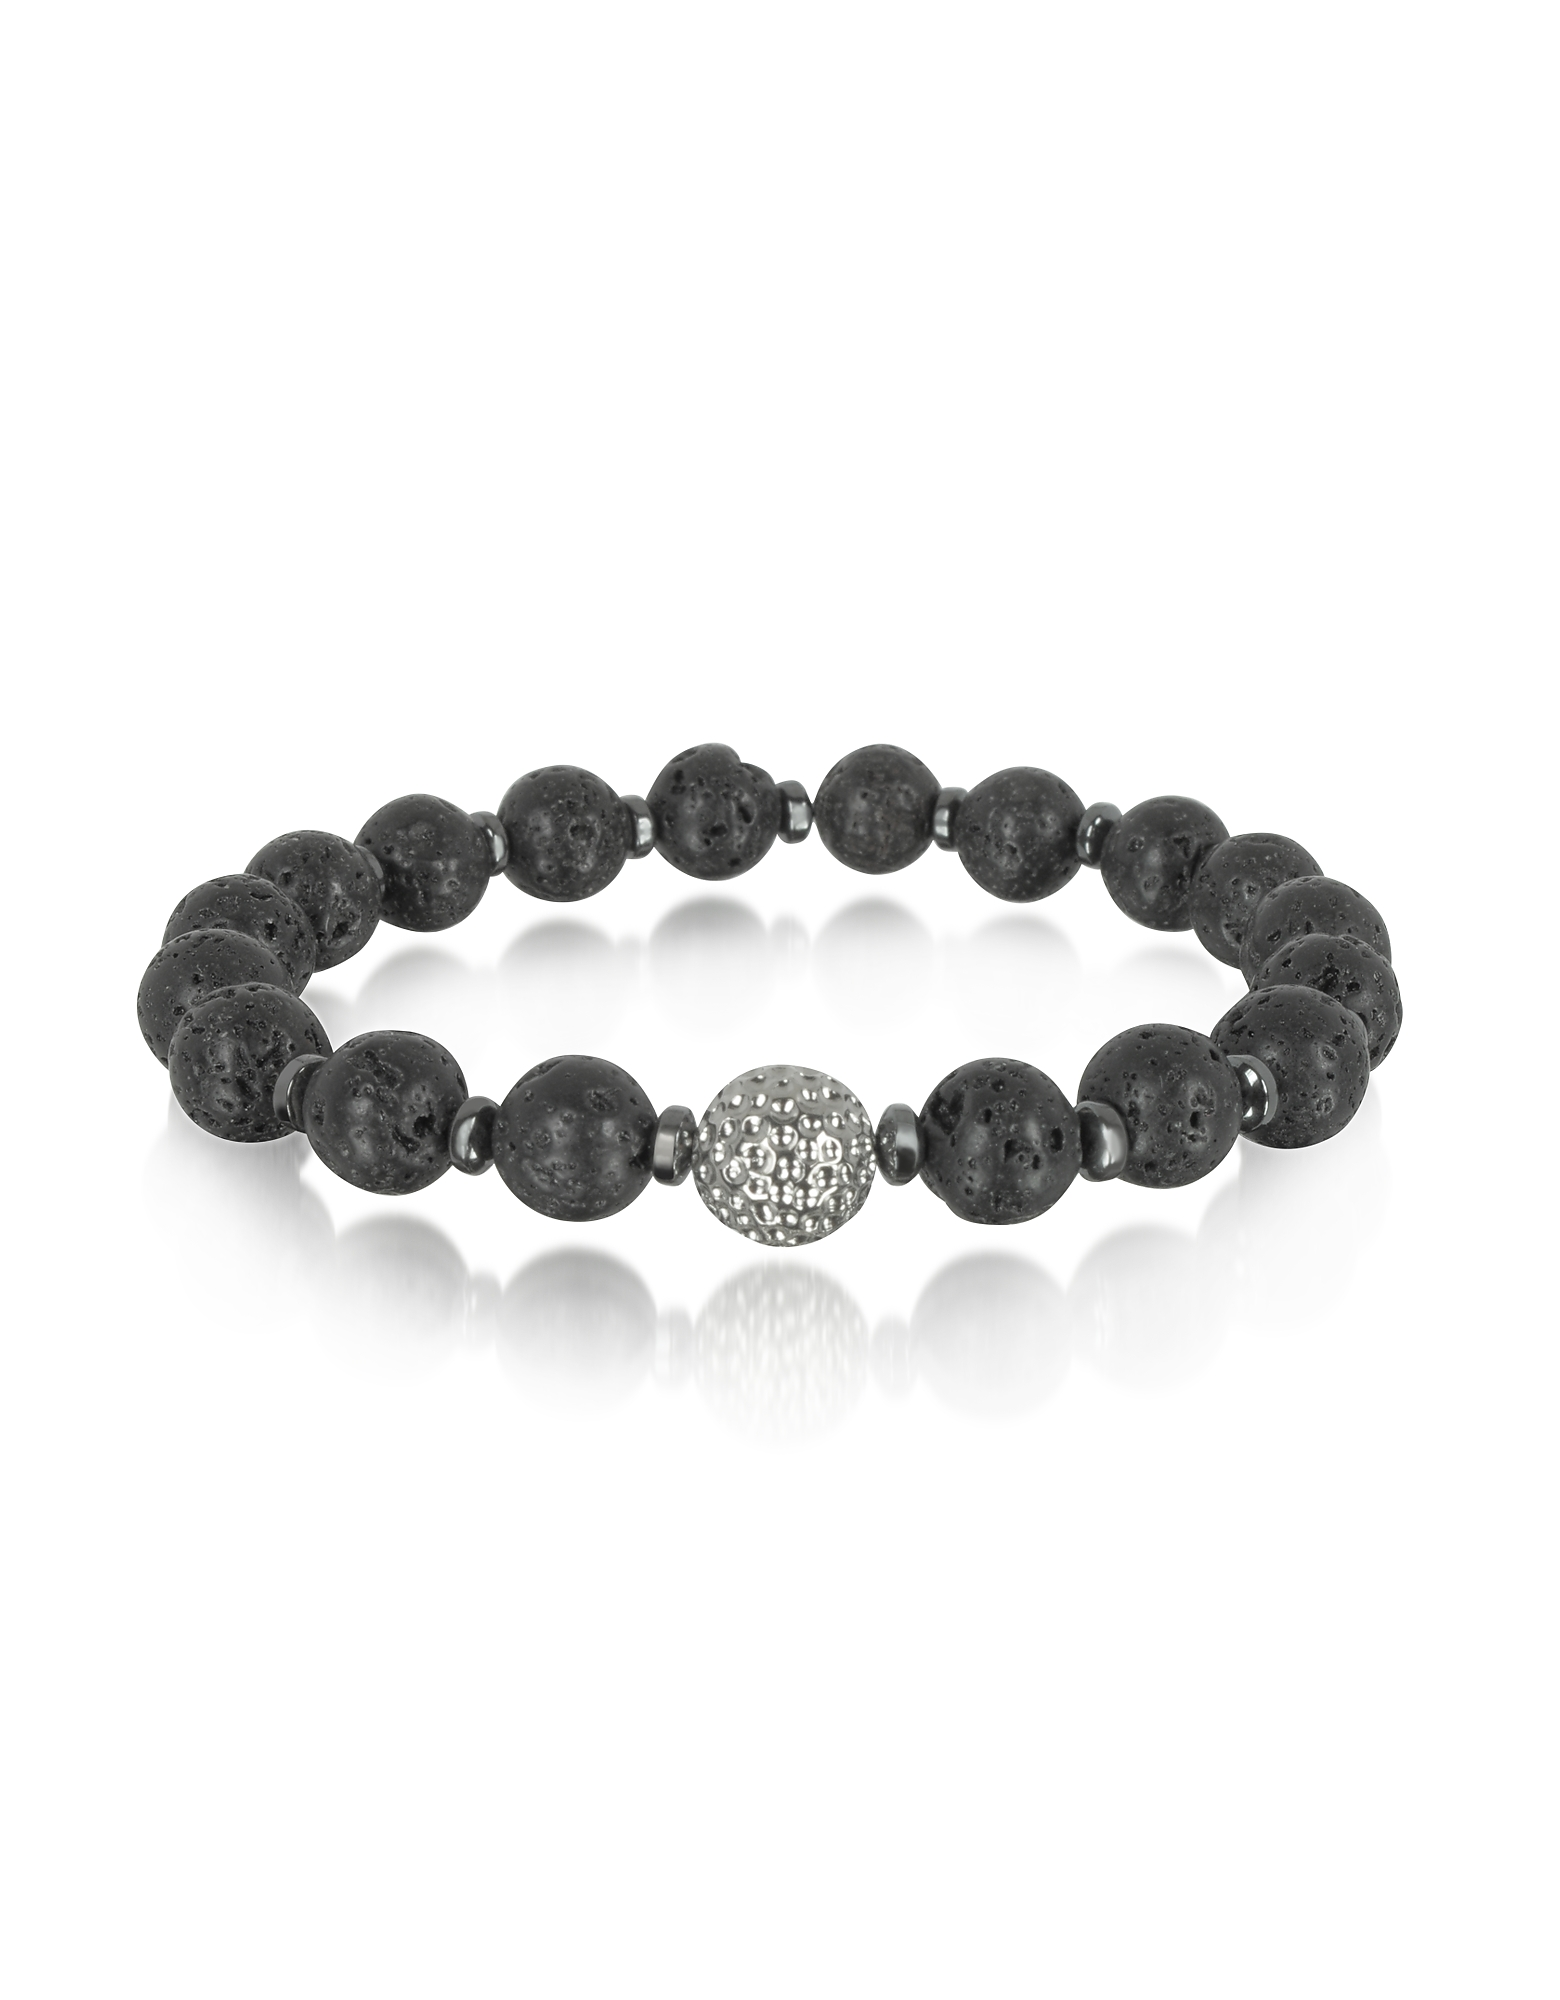 Image of Blackbourne Designer Men's Bracelets, Lava Small Stone Men's Bracelet w/Brass Golf Ball